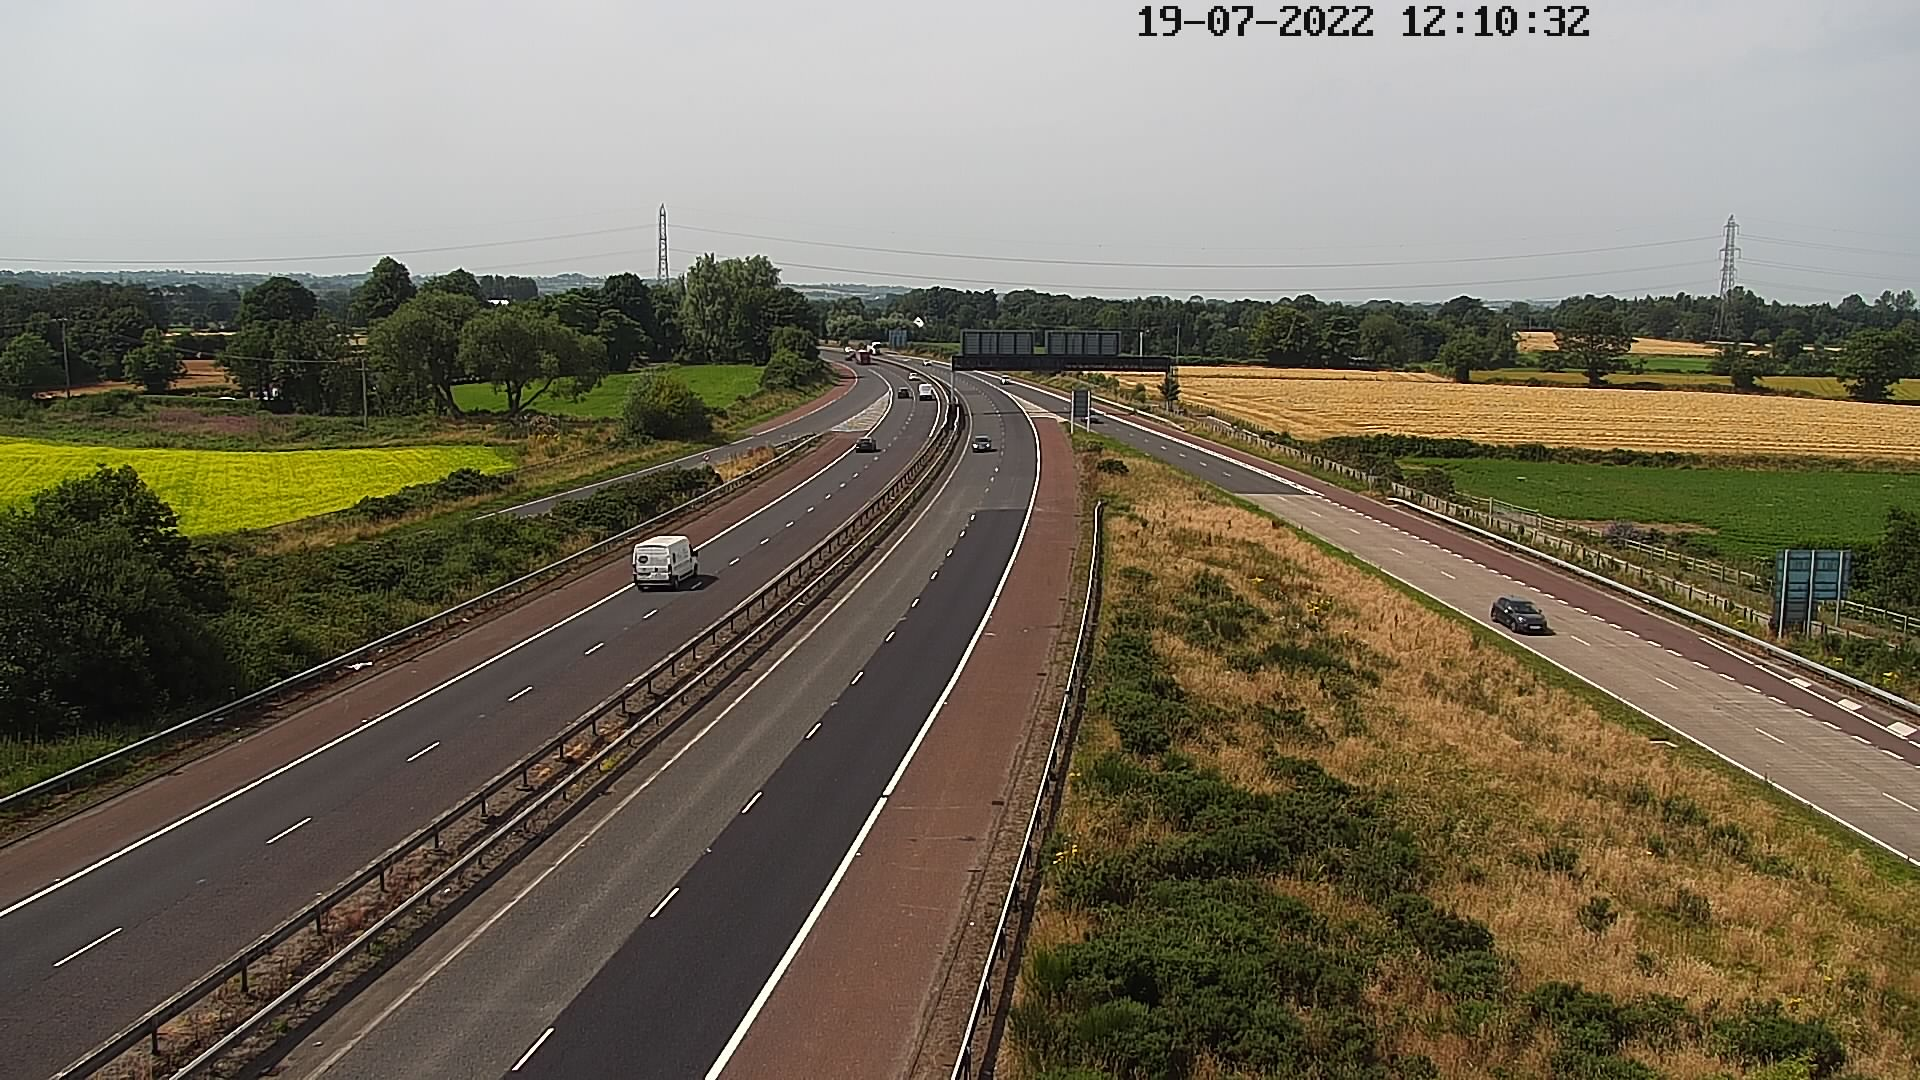 CCTV Camera image for M1 - Blaris - Jct 8